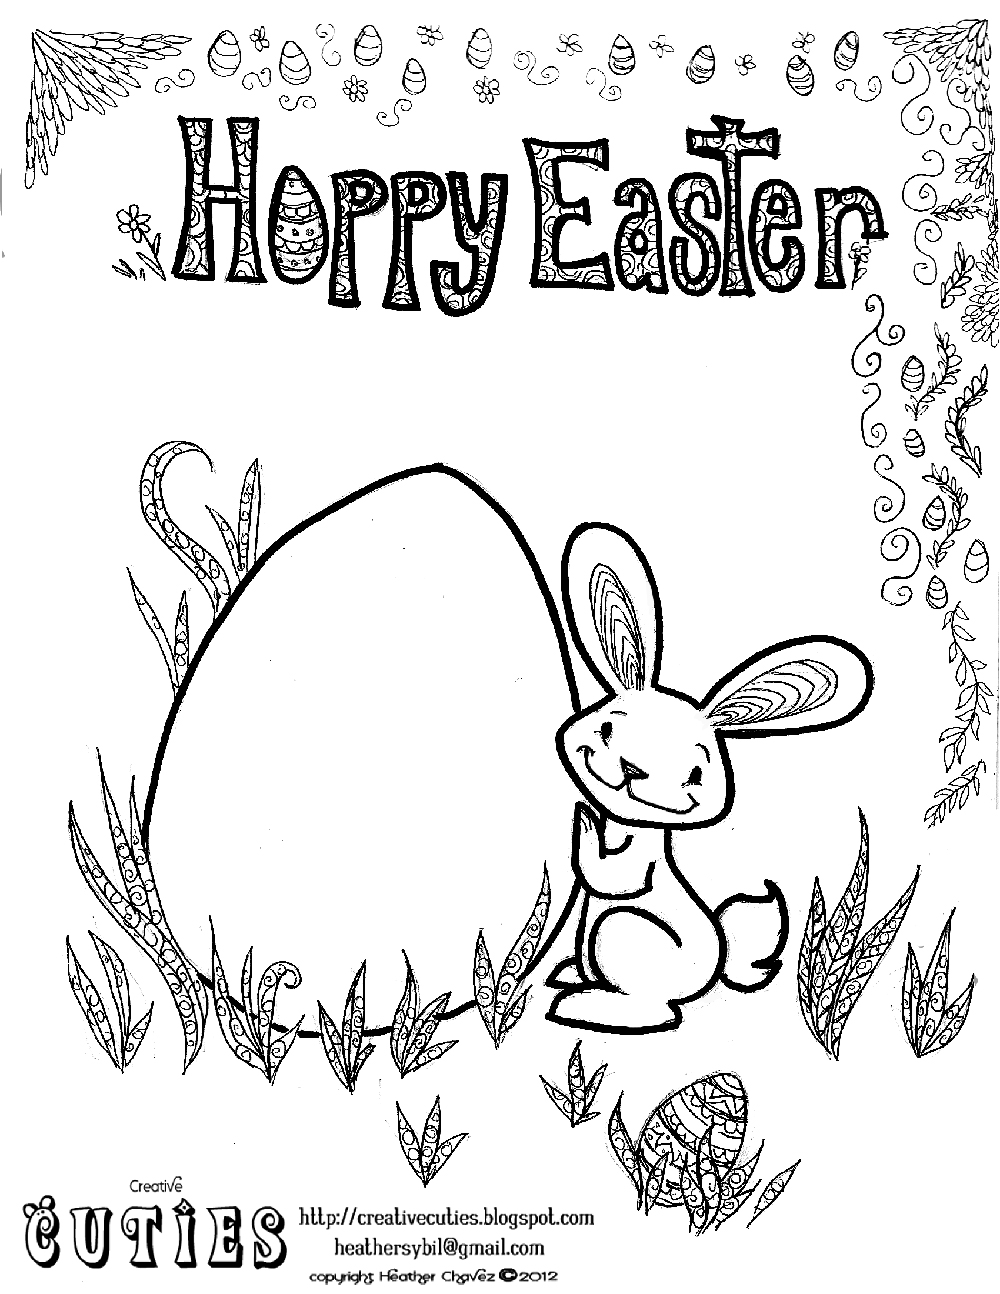 creative cuties  easter bunny coloring page